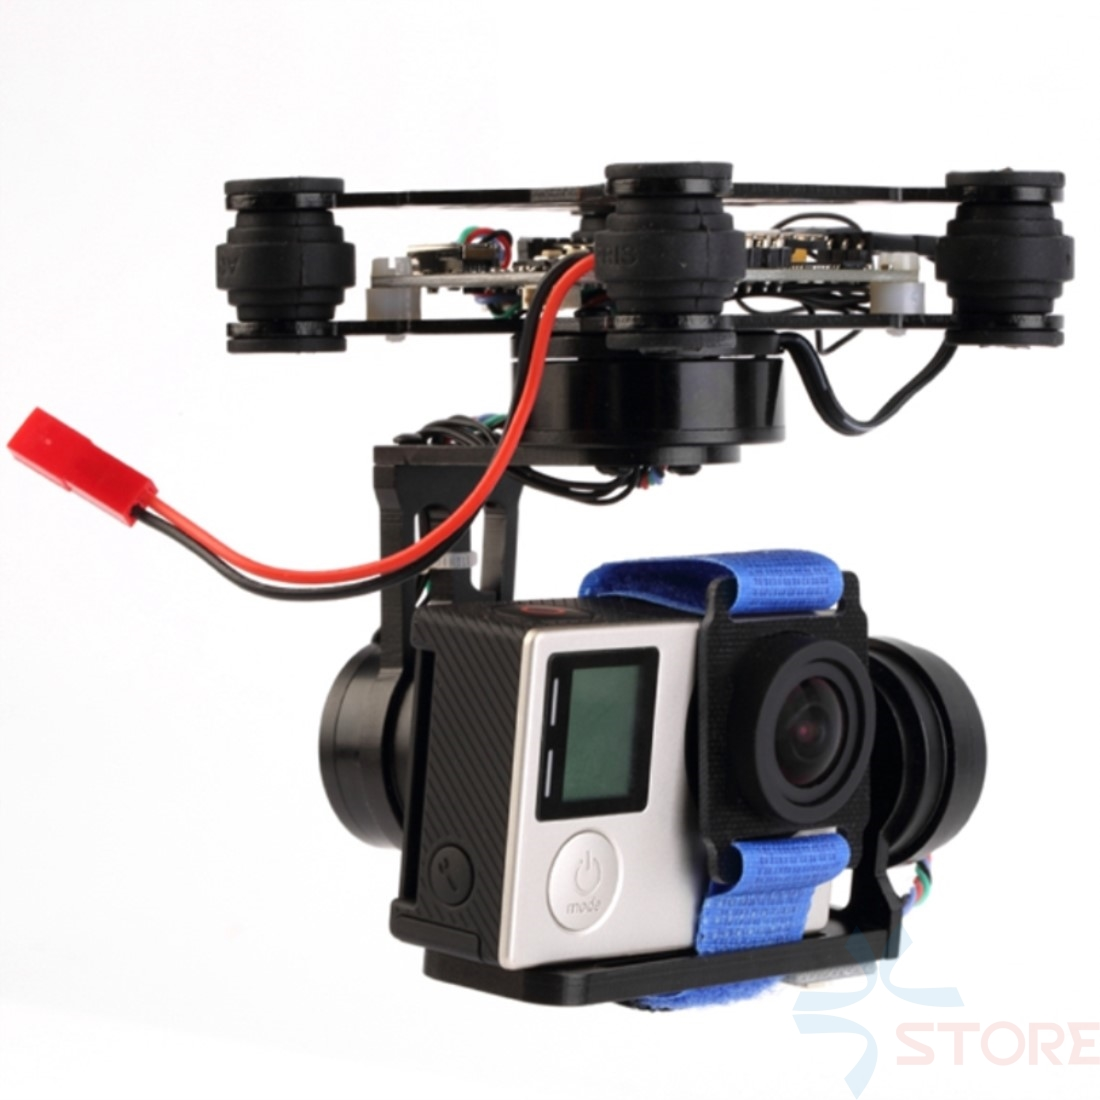 3 Axis assembled Brushless Gimbal Frame With Motors & Storm32 Controlller for Gopro 3 4 Xiaomi Xiaoyi SJ4000 SJCAM FPV RTF professional drone accesorries brushless gimbal frame 2 motors controller for dji phantom gopro 4 3 3 fpv 6a30 drop shipping